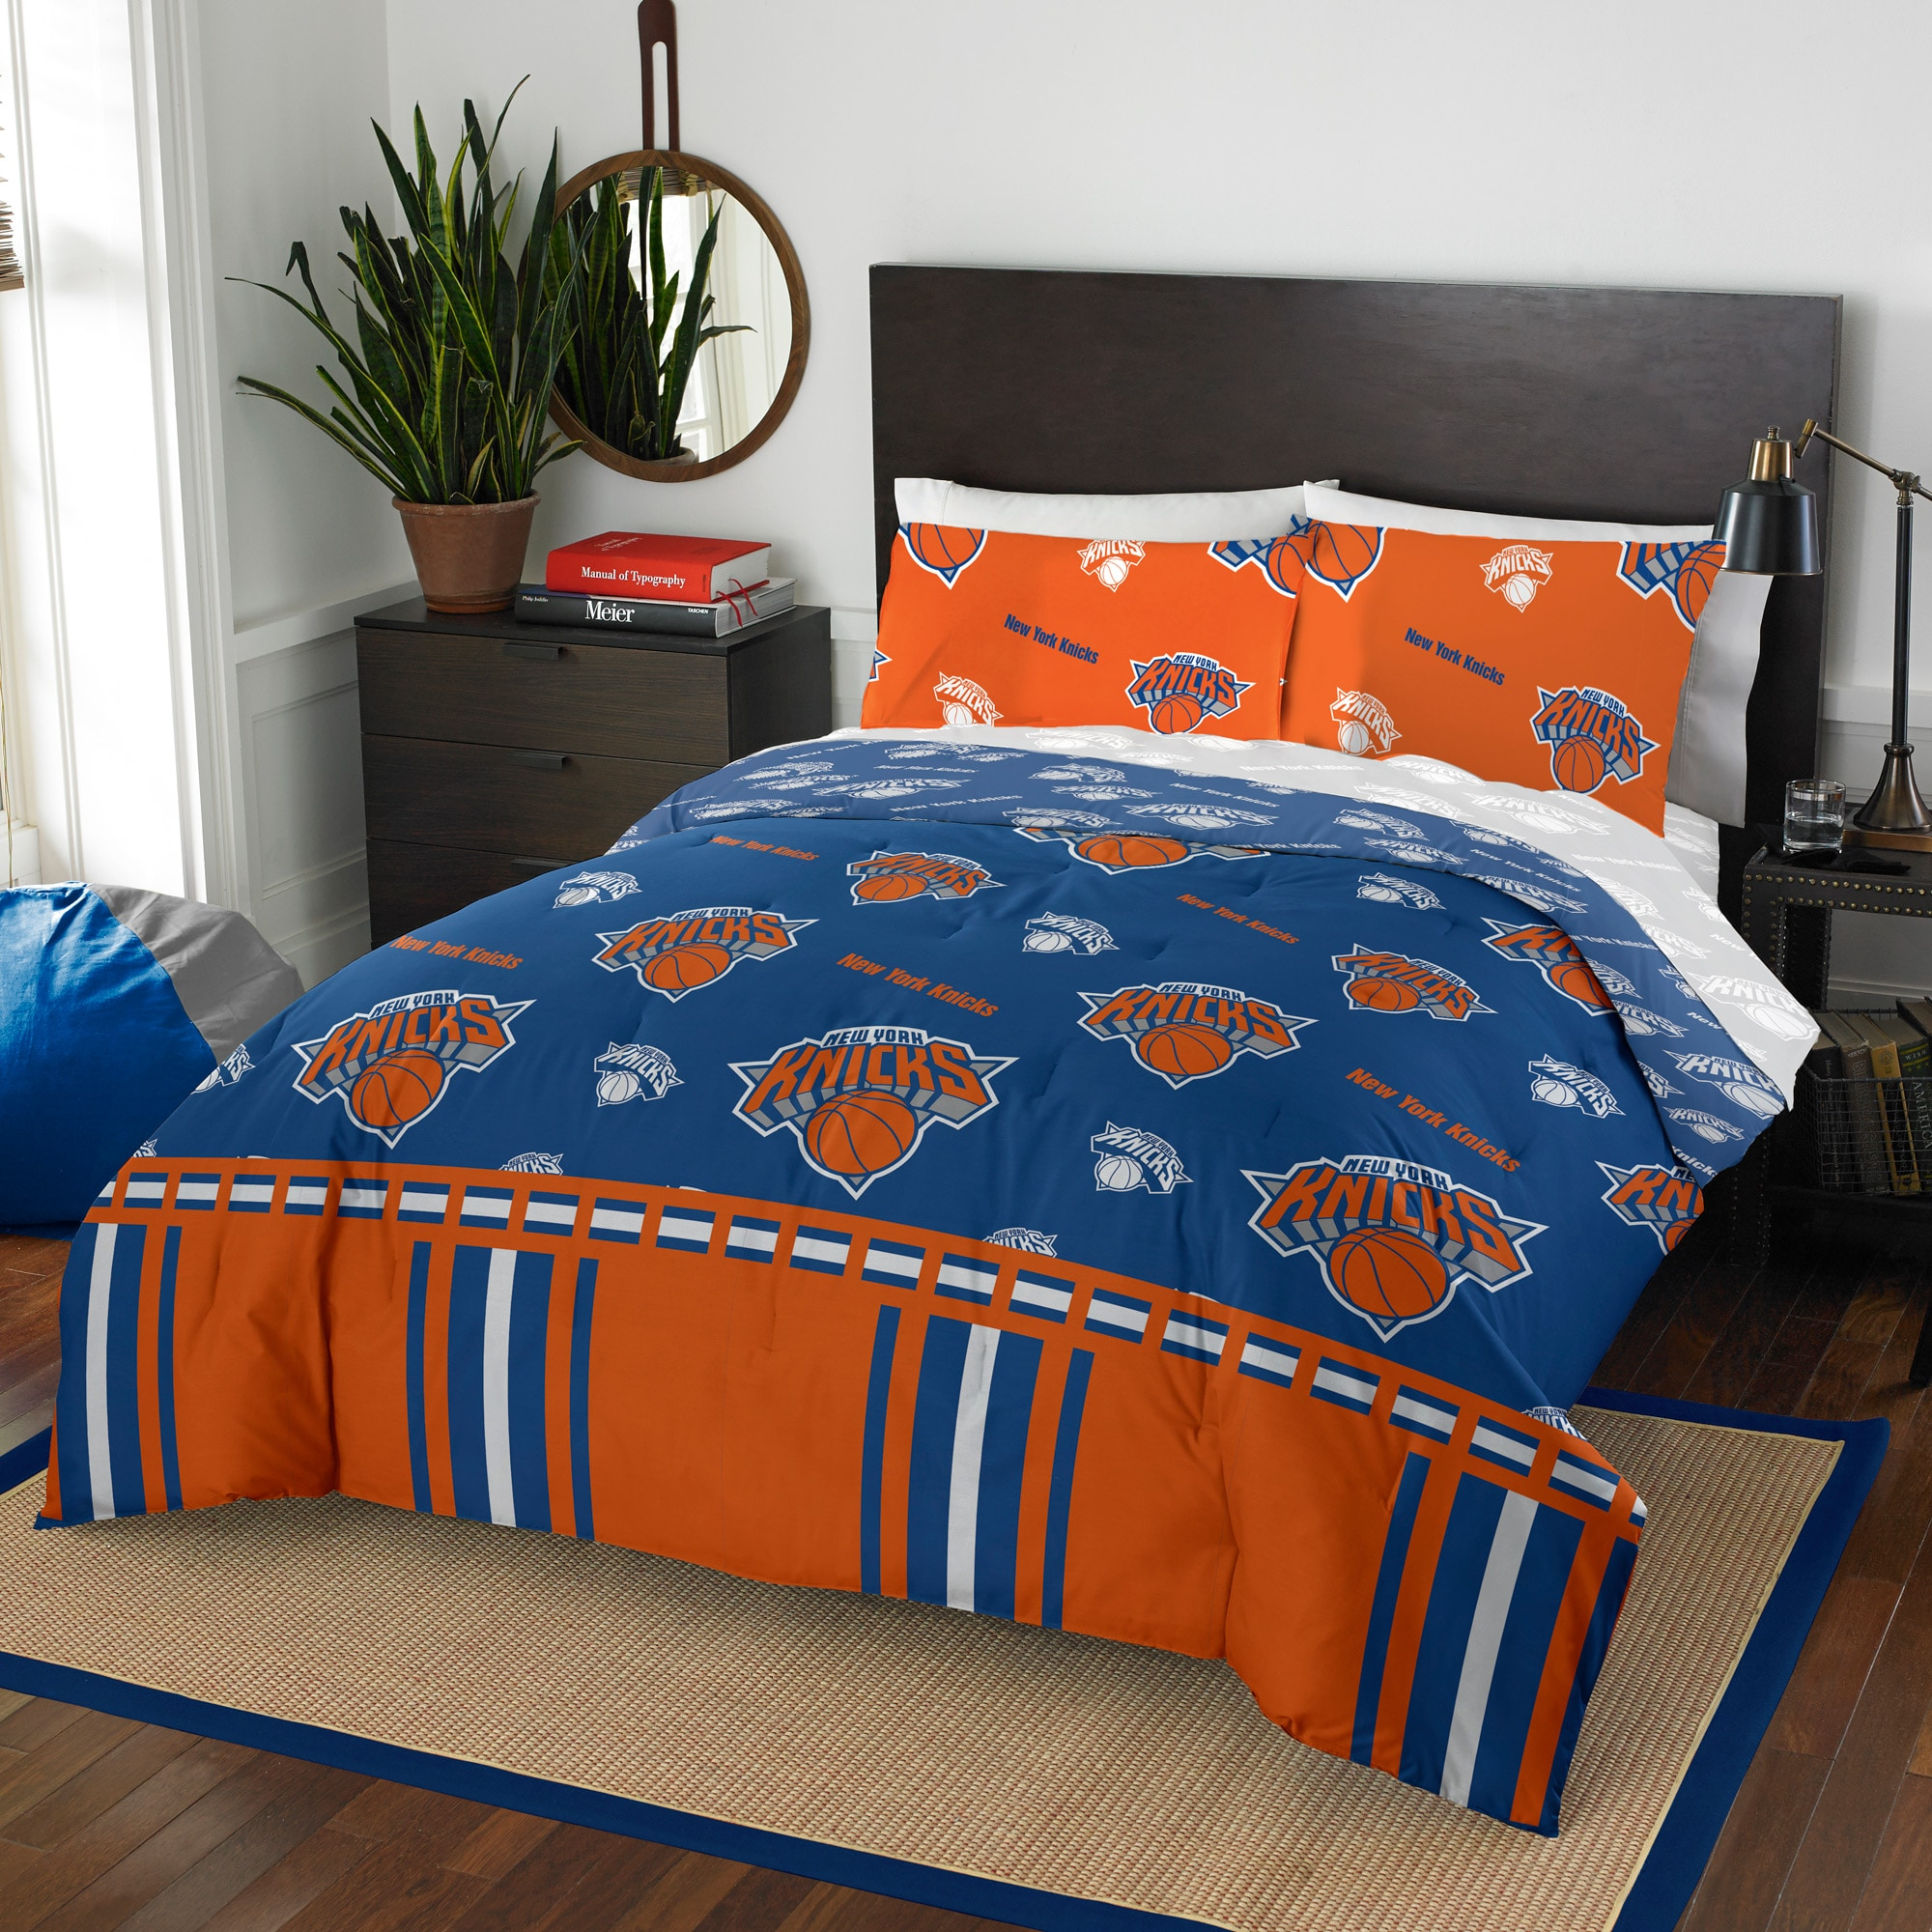 New York Knicks The Northwest Company 5-Piece Full Bed in a Bag Set